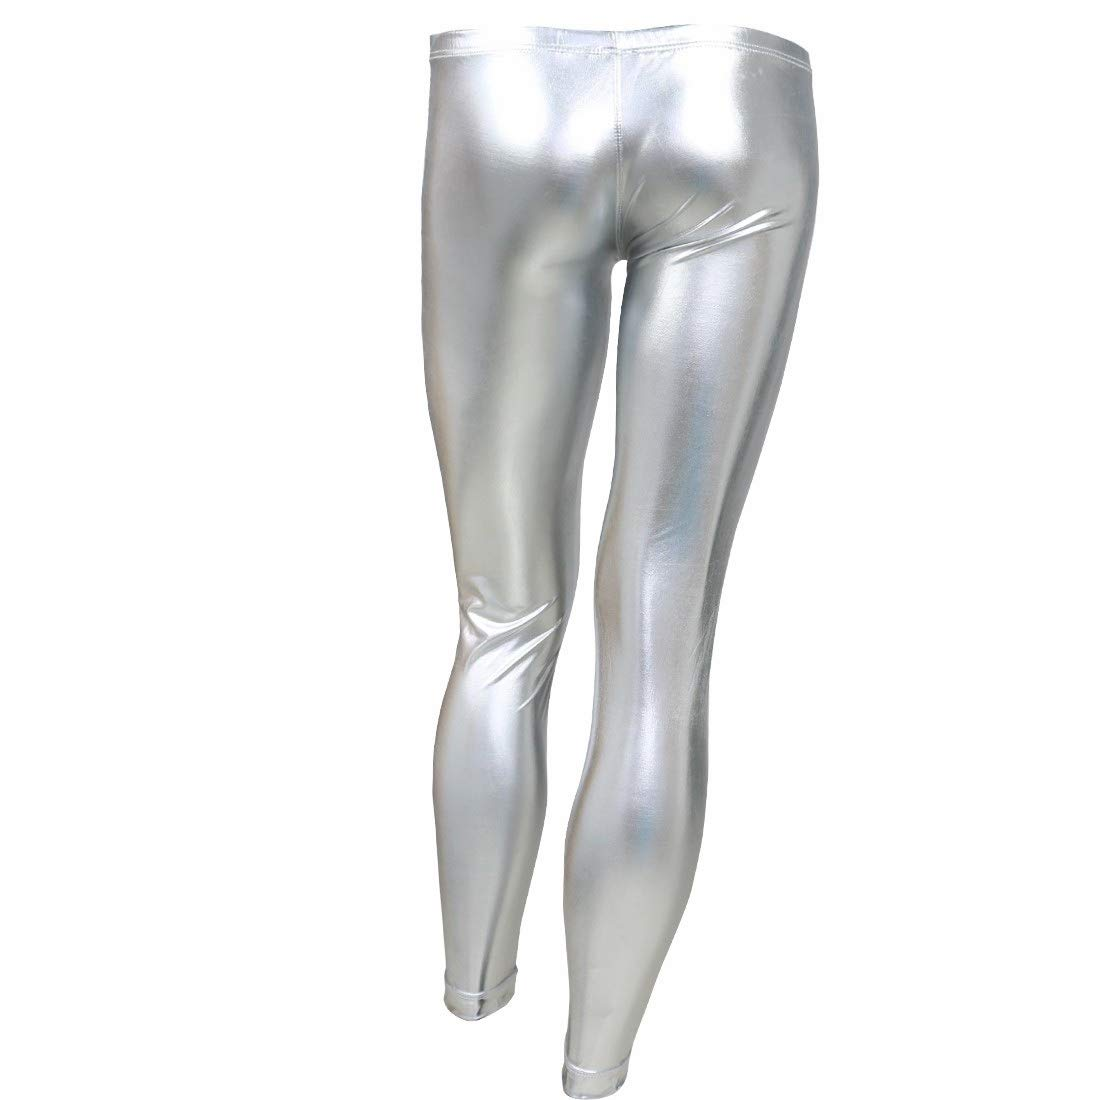 Agoky Mens Shinny Metallic PVC Pants Tights Legging Trousers Bulge Pouch Clubwear Costume